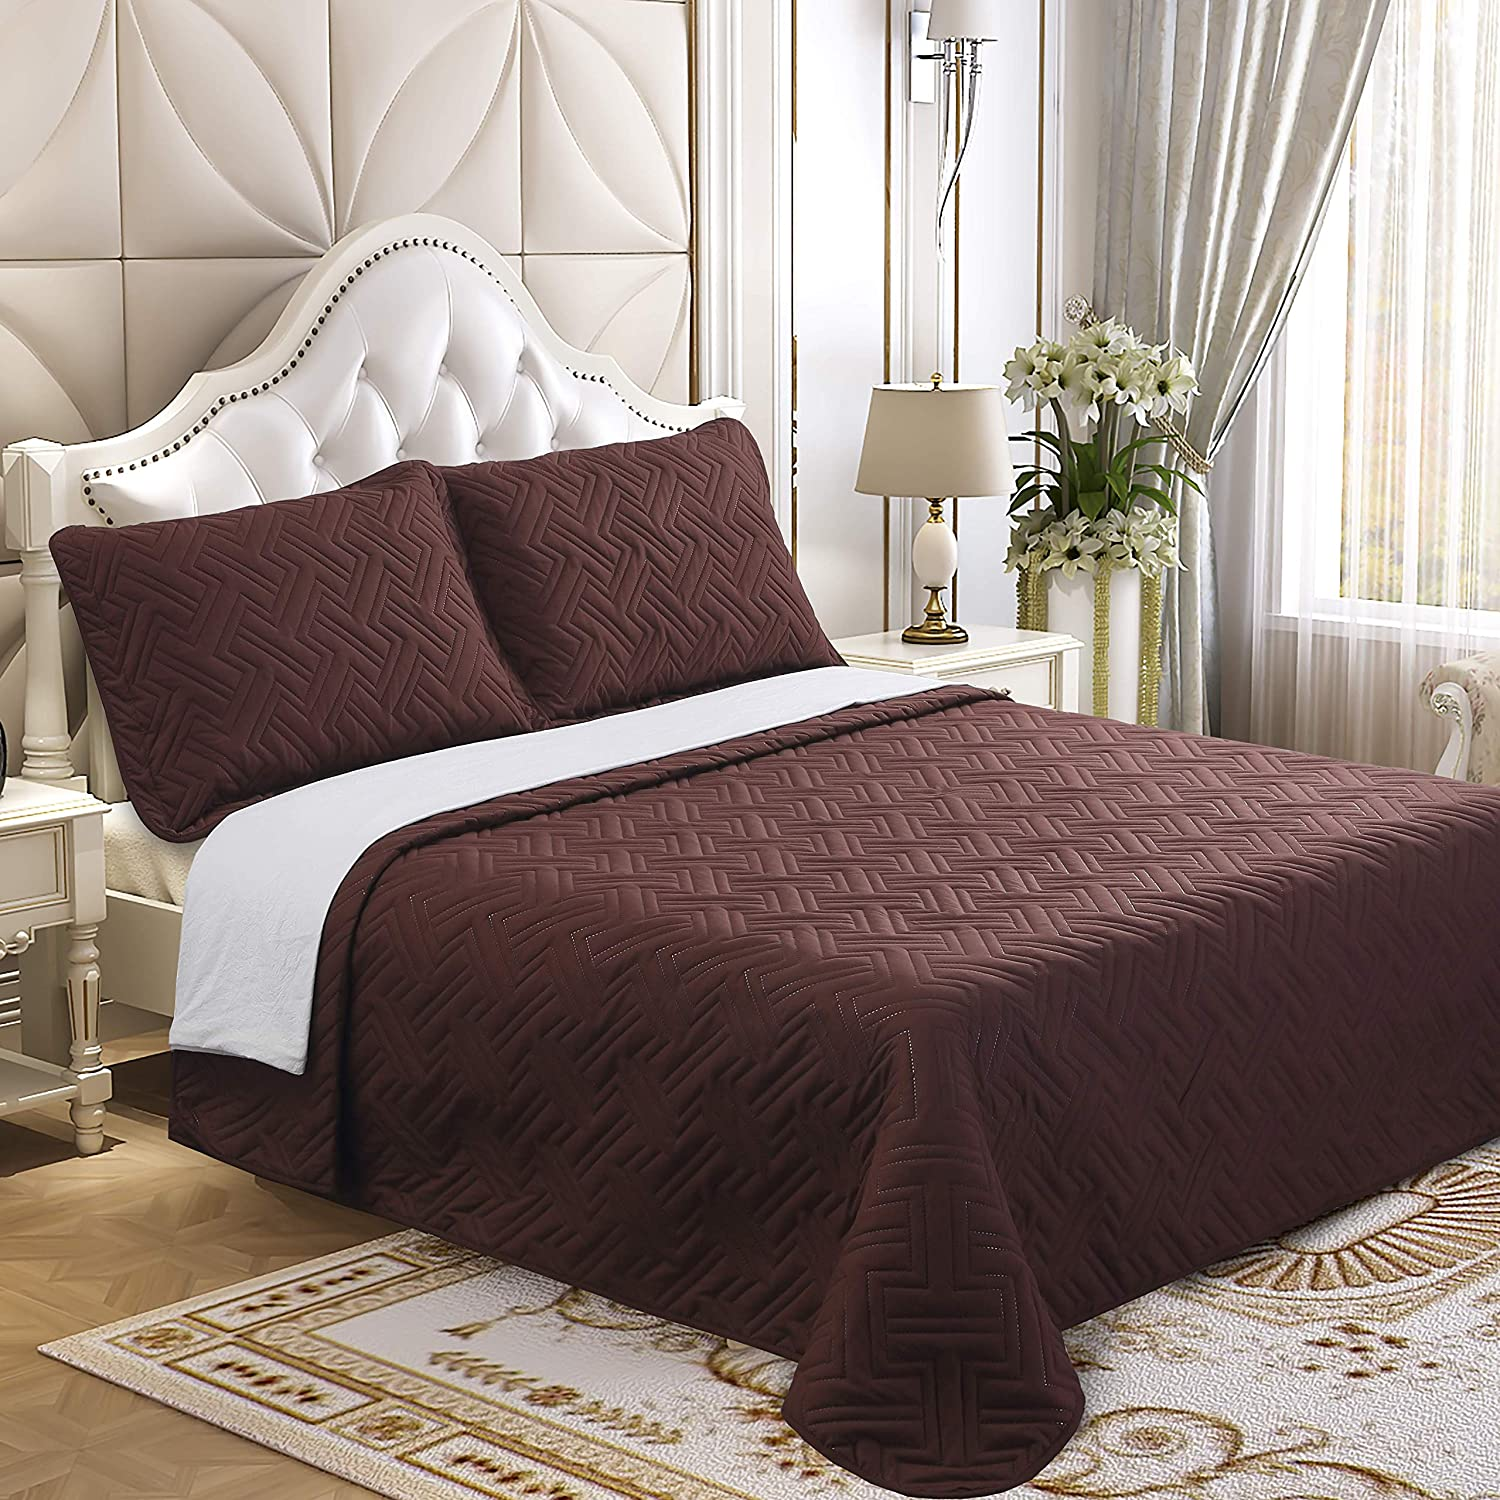 Lorient Home Brushed Microfiber Embossed 2 Piece Twin Lightweight Quilt Set for Coverlet or Blanket Chocolate Bedding, Multi